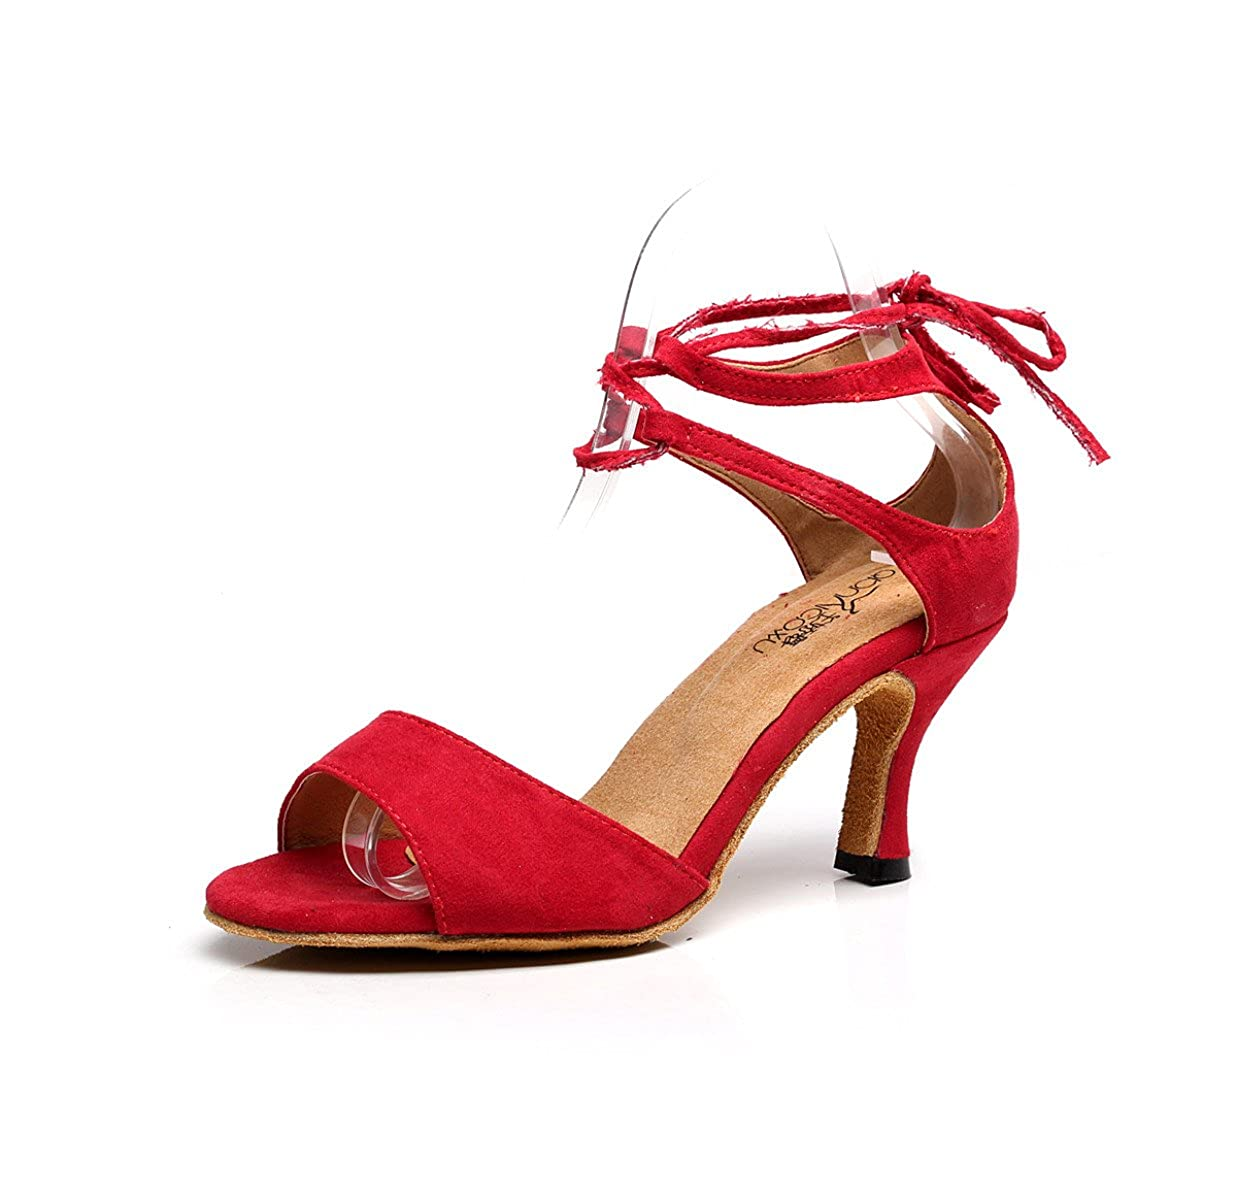 JSHOE Danse Salsa Souliers Latins De Danse De Souliers Salsa Des Femmes/Tango/Thé/Samba/Moderne/Chaussures De Jazz Sandales Talons Hauts,Red-heeled5cm-UK7.5/EU42/Our43 - 44d0a1d - boatplans.space